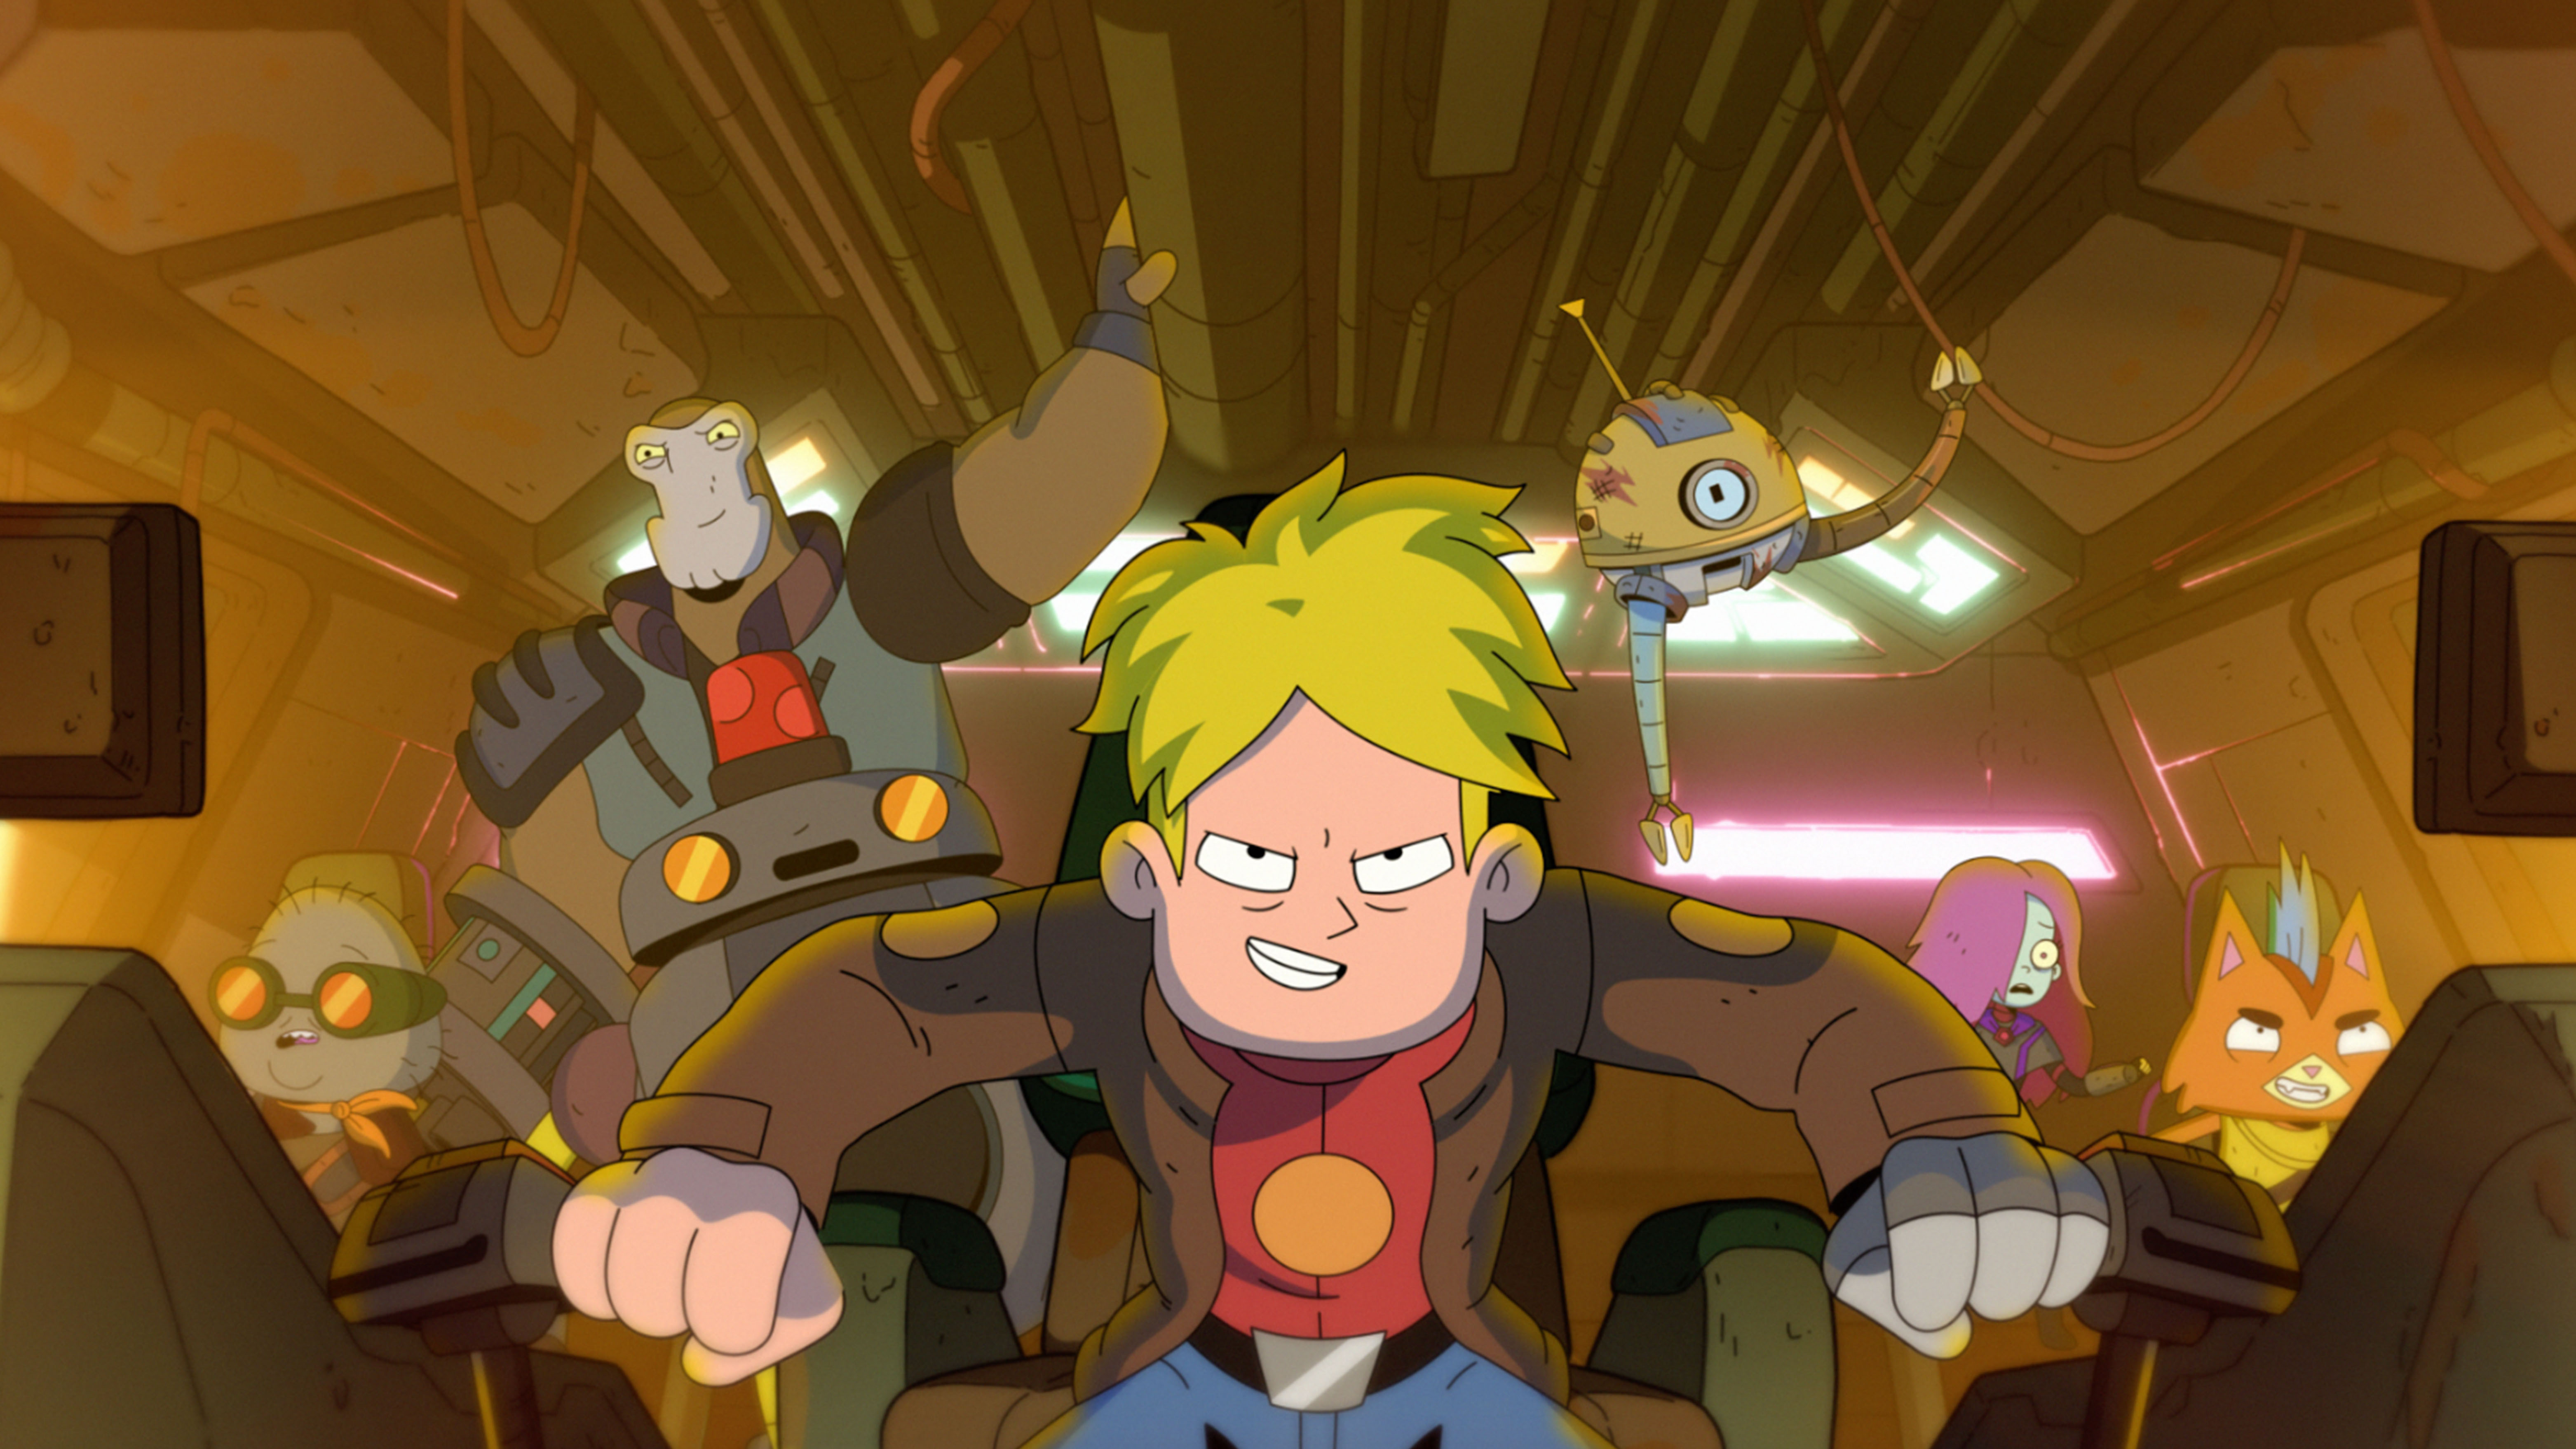 Final Space S2 airs on Mondays at 11:30pm E/P